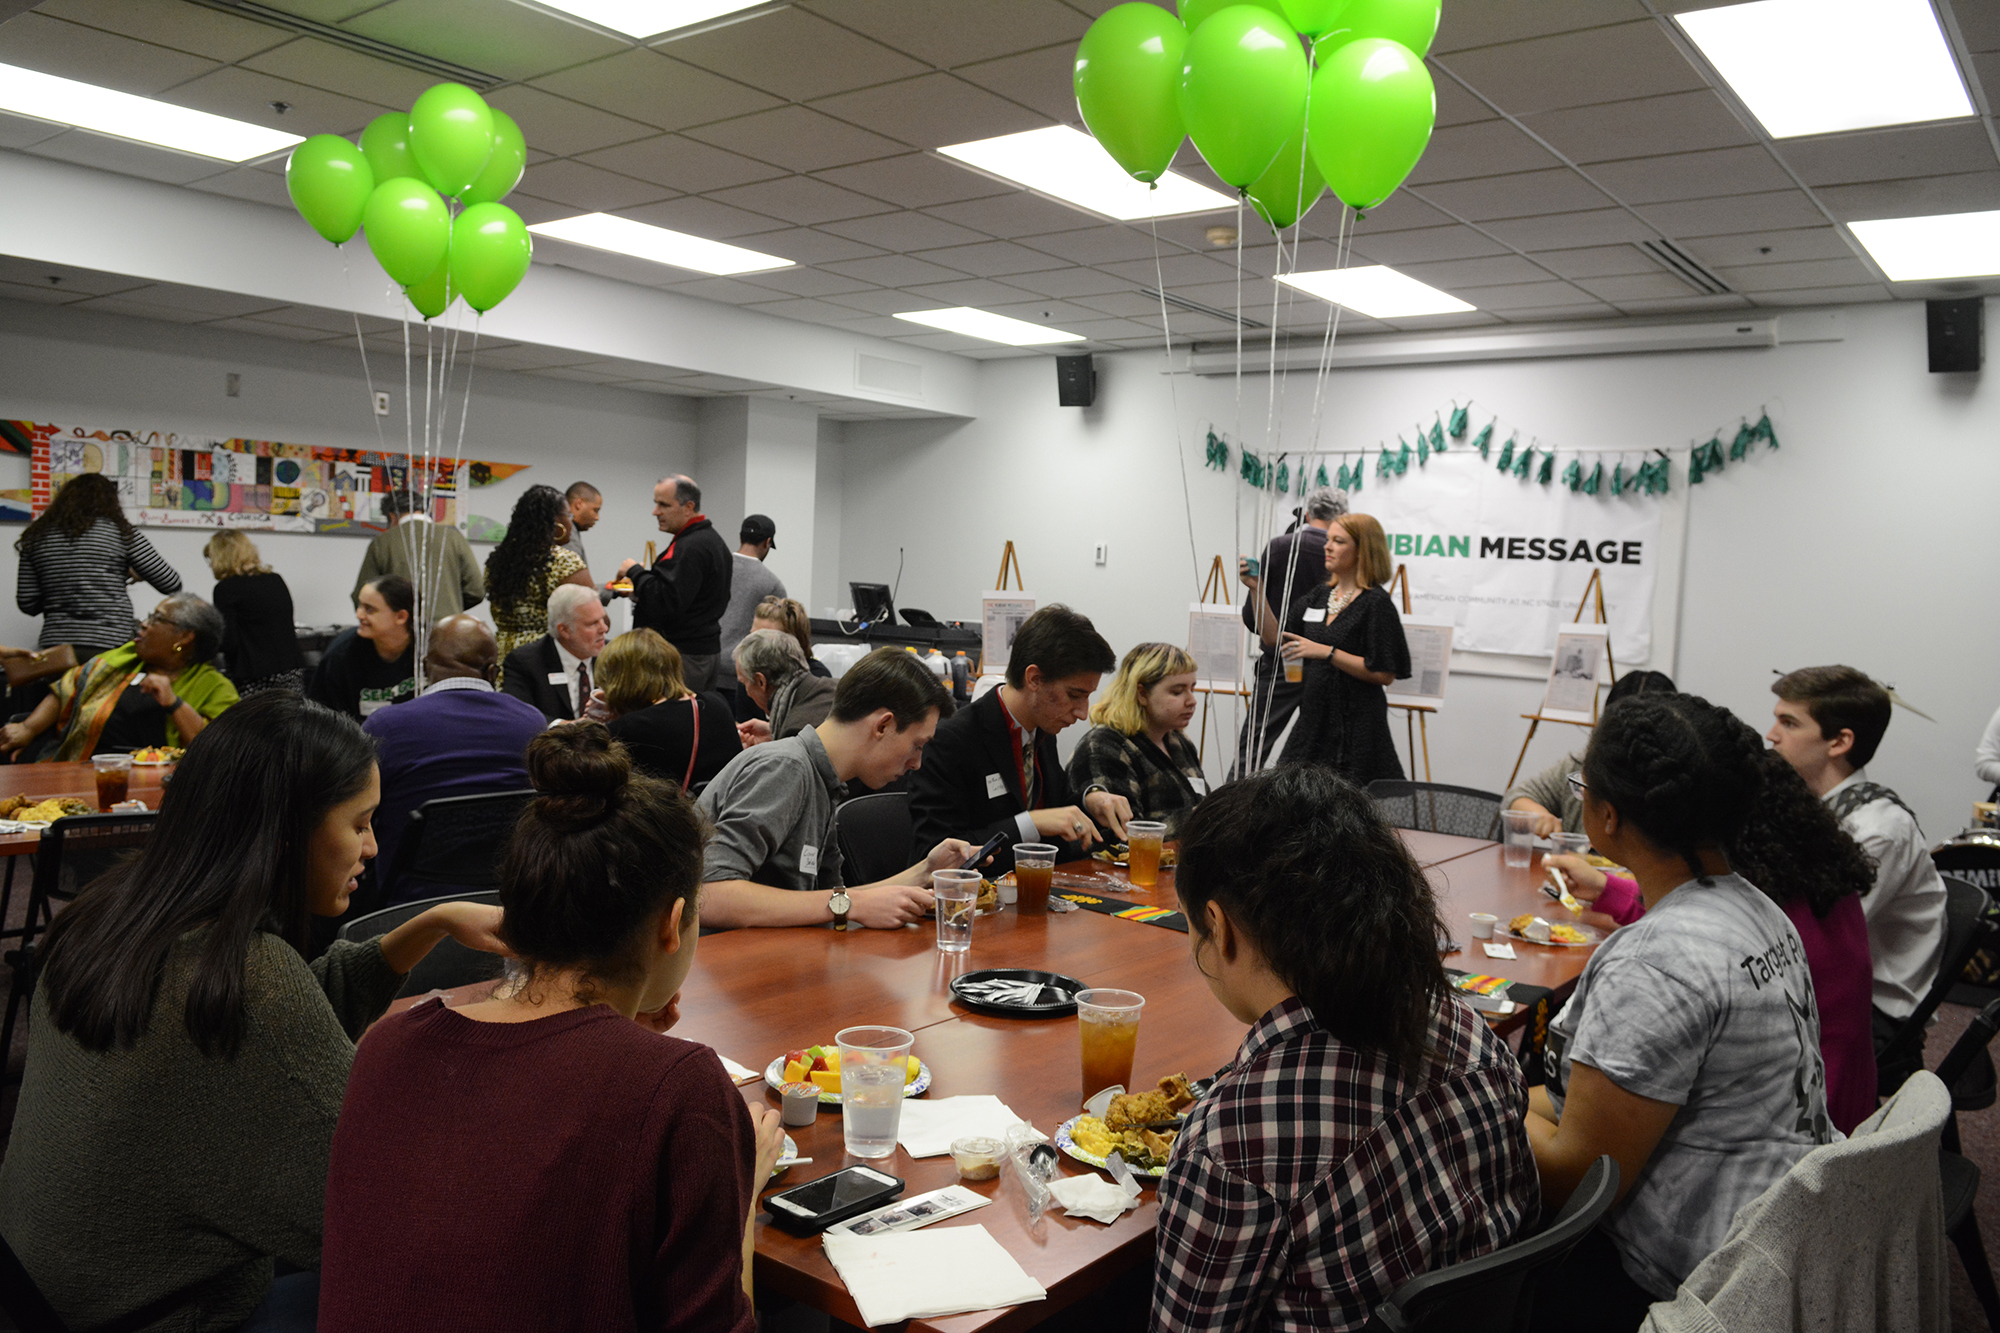 People eating at tables with green balloons. Large Nubian Message poster on wall in background.